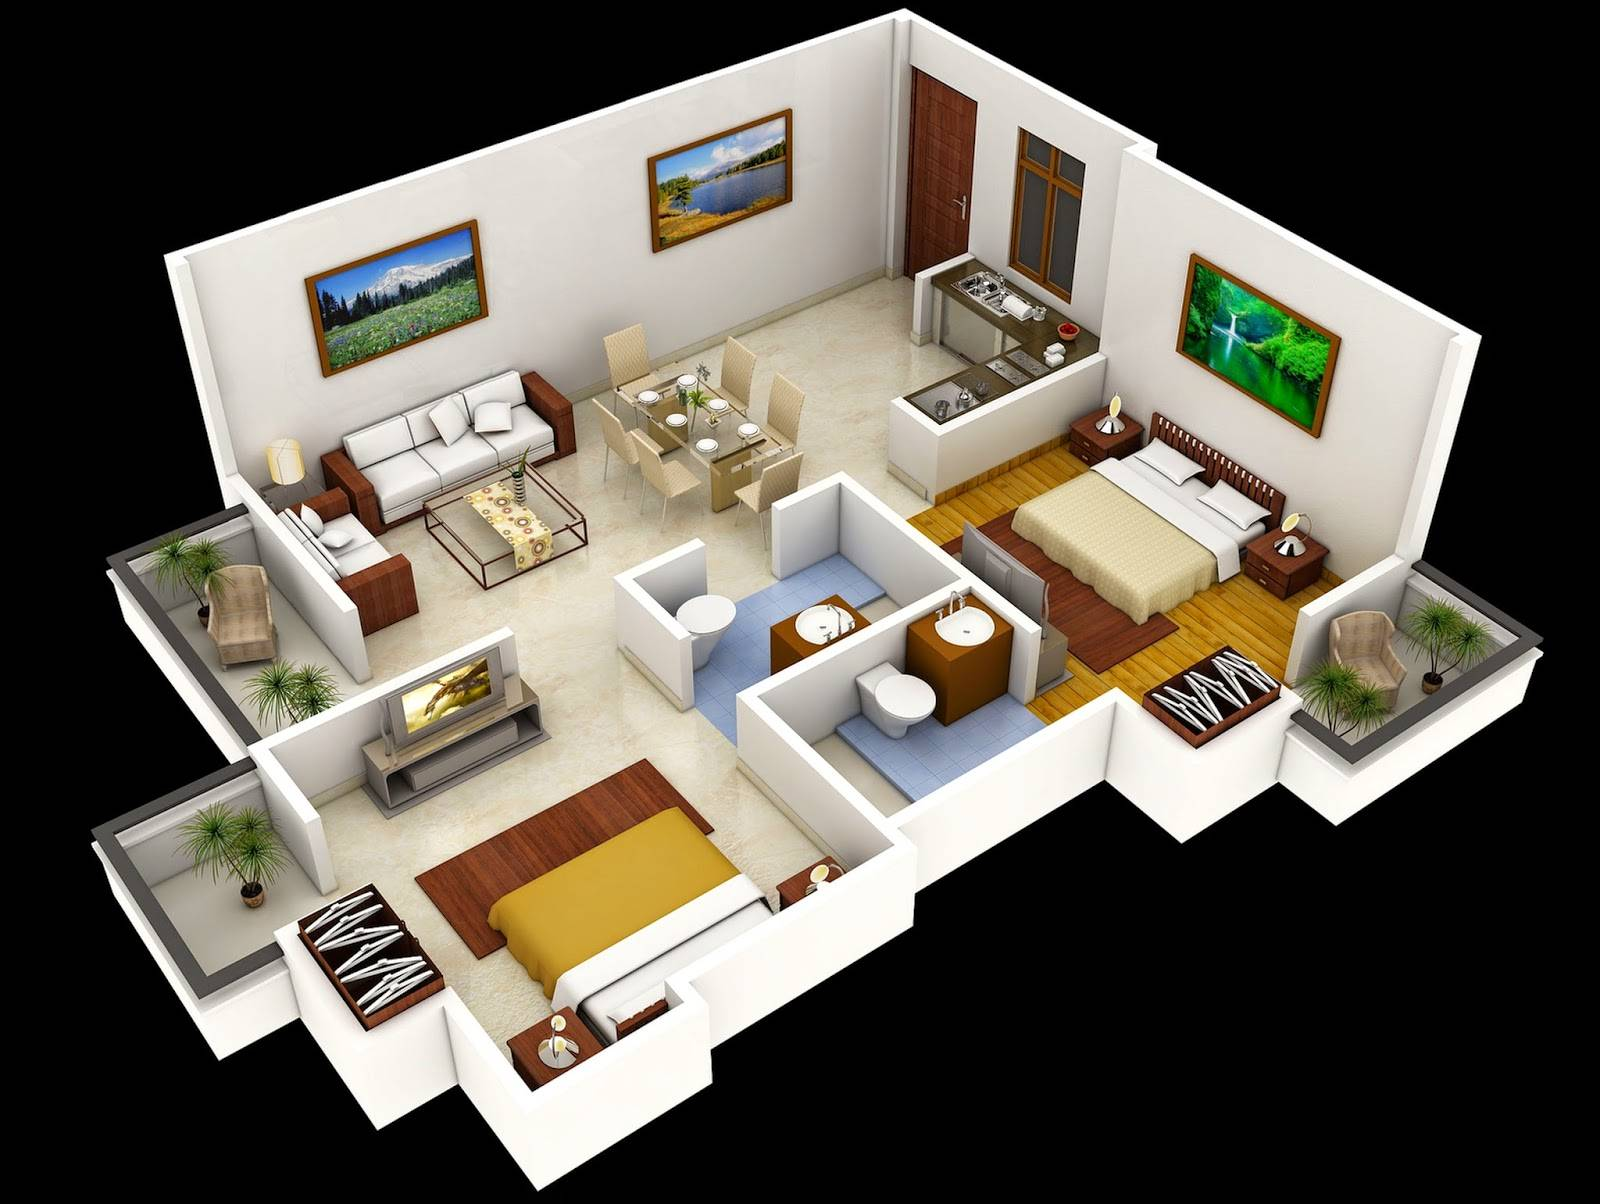 Related Two Bedroom House Interior Design House Plans 50371